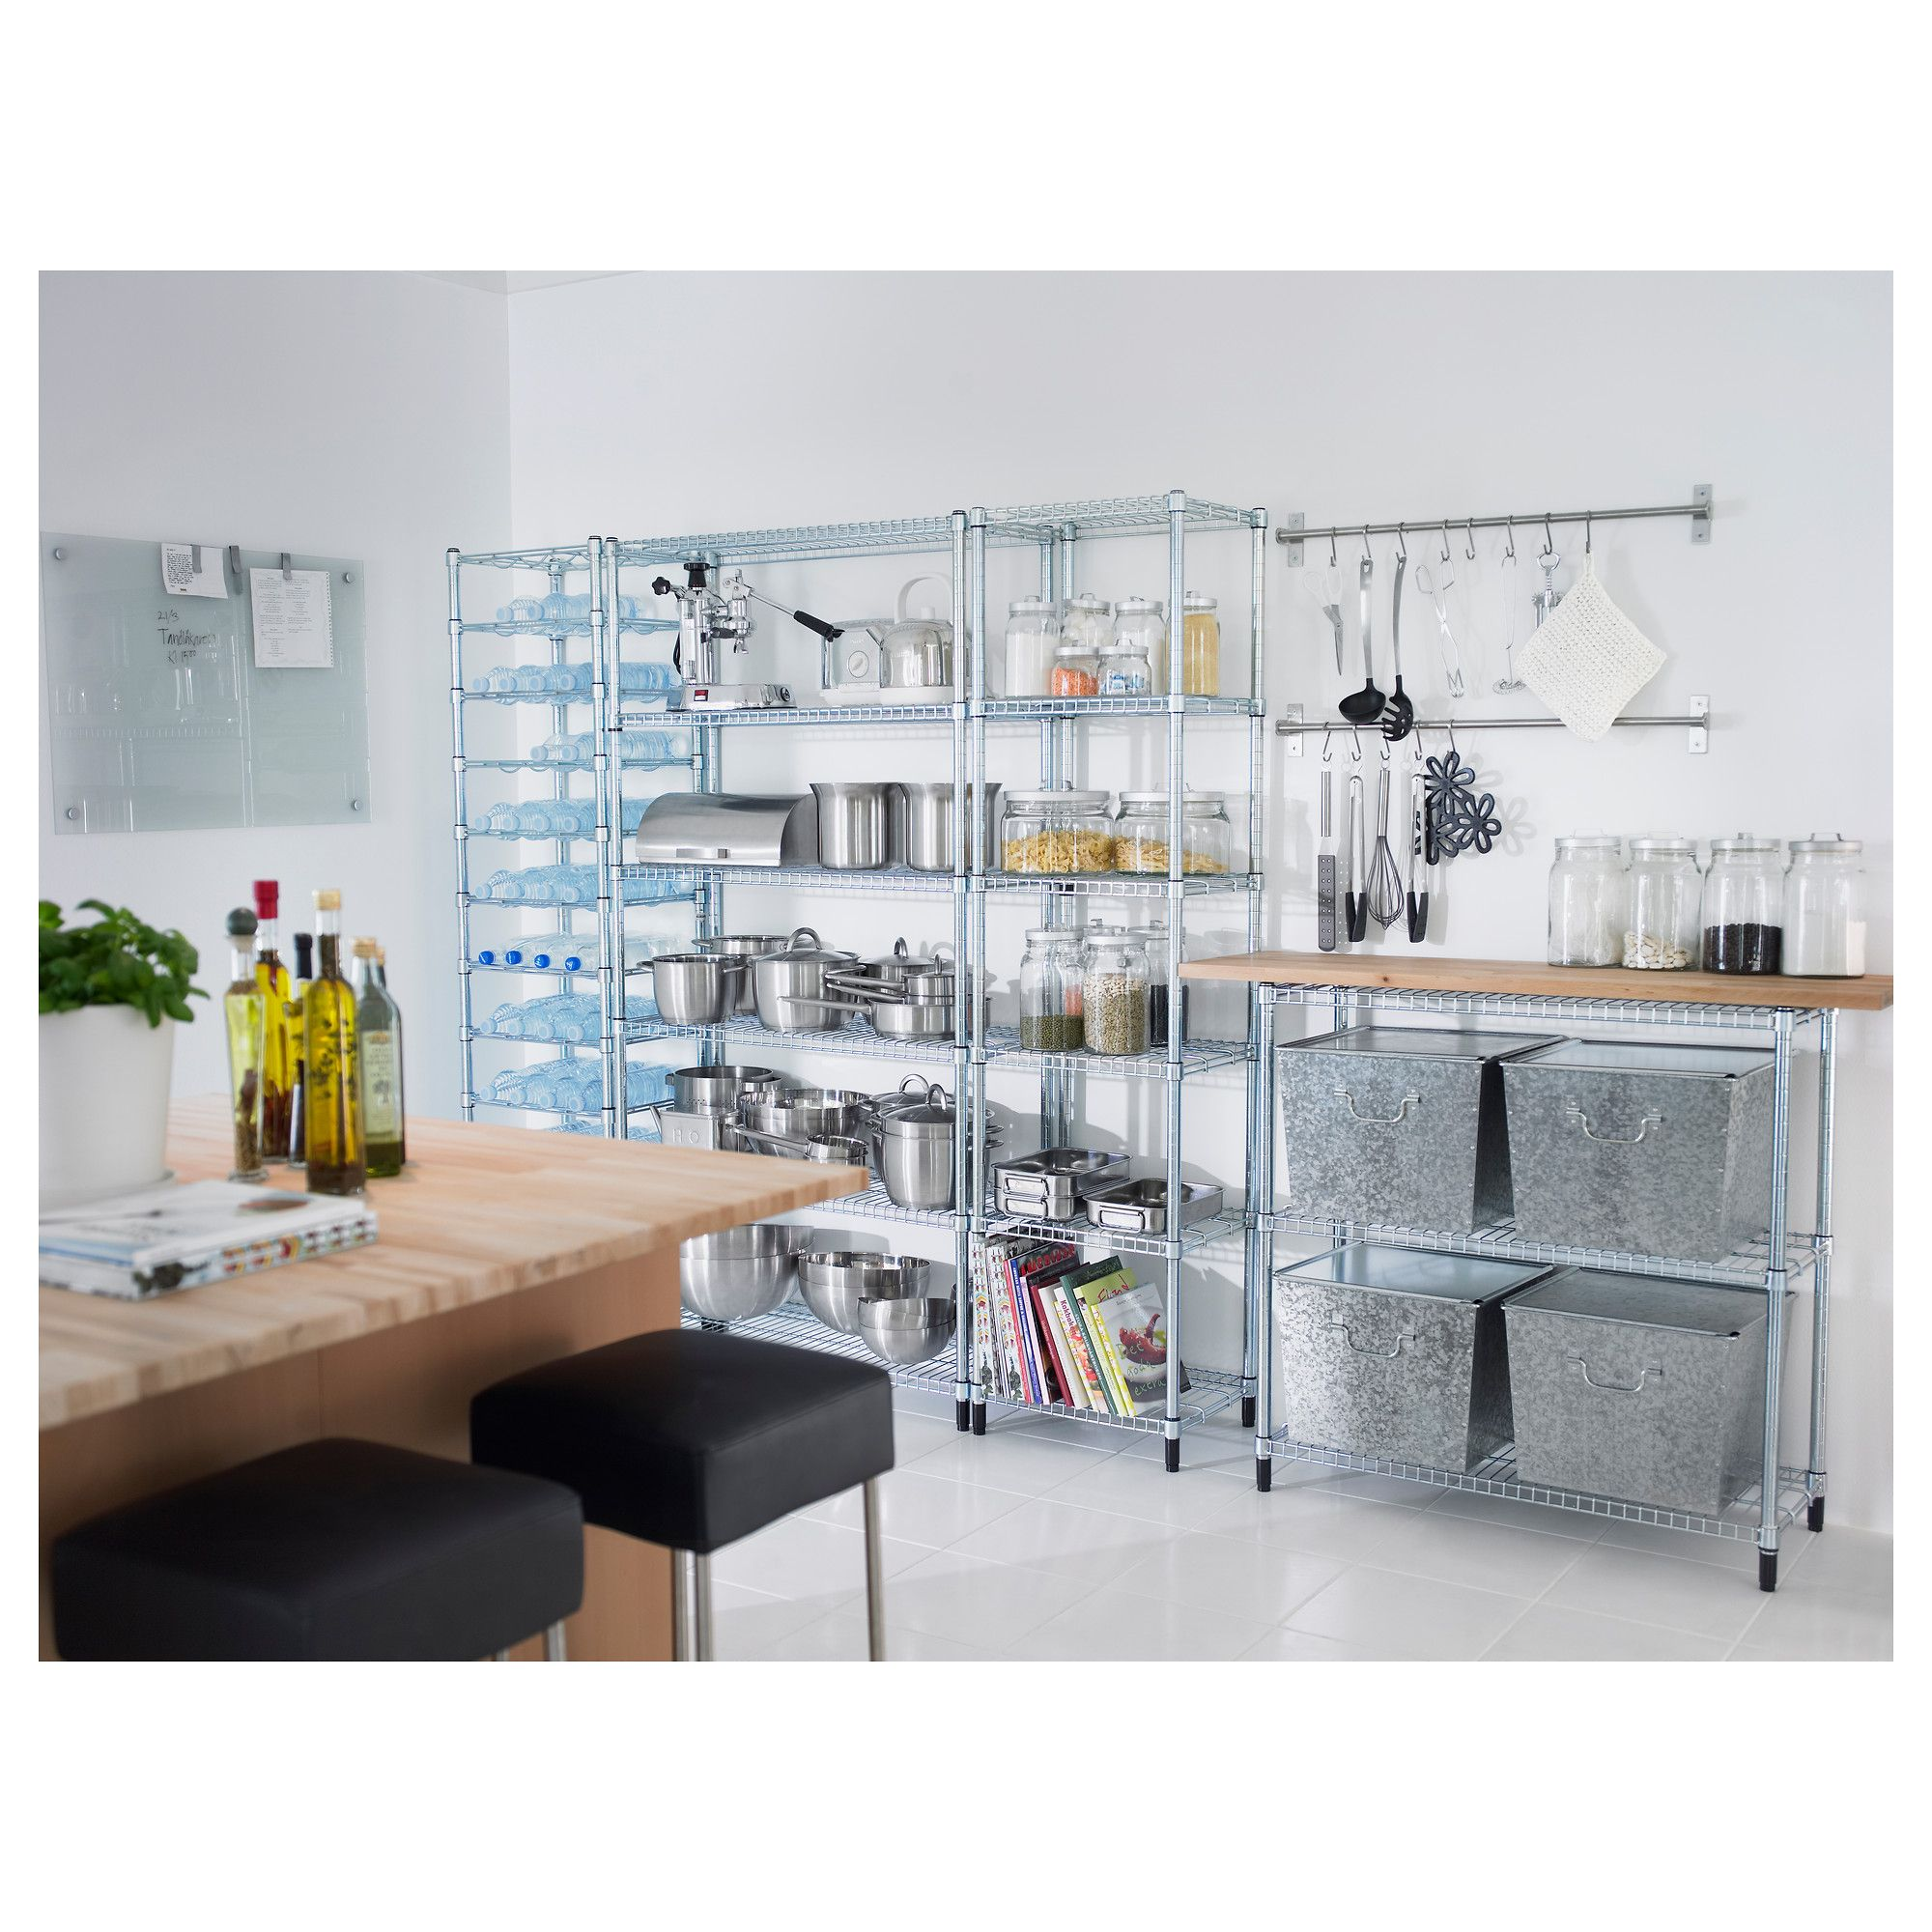 Ikea Omar industrial modern kitchen storage unit | kitchen ...